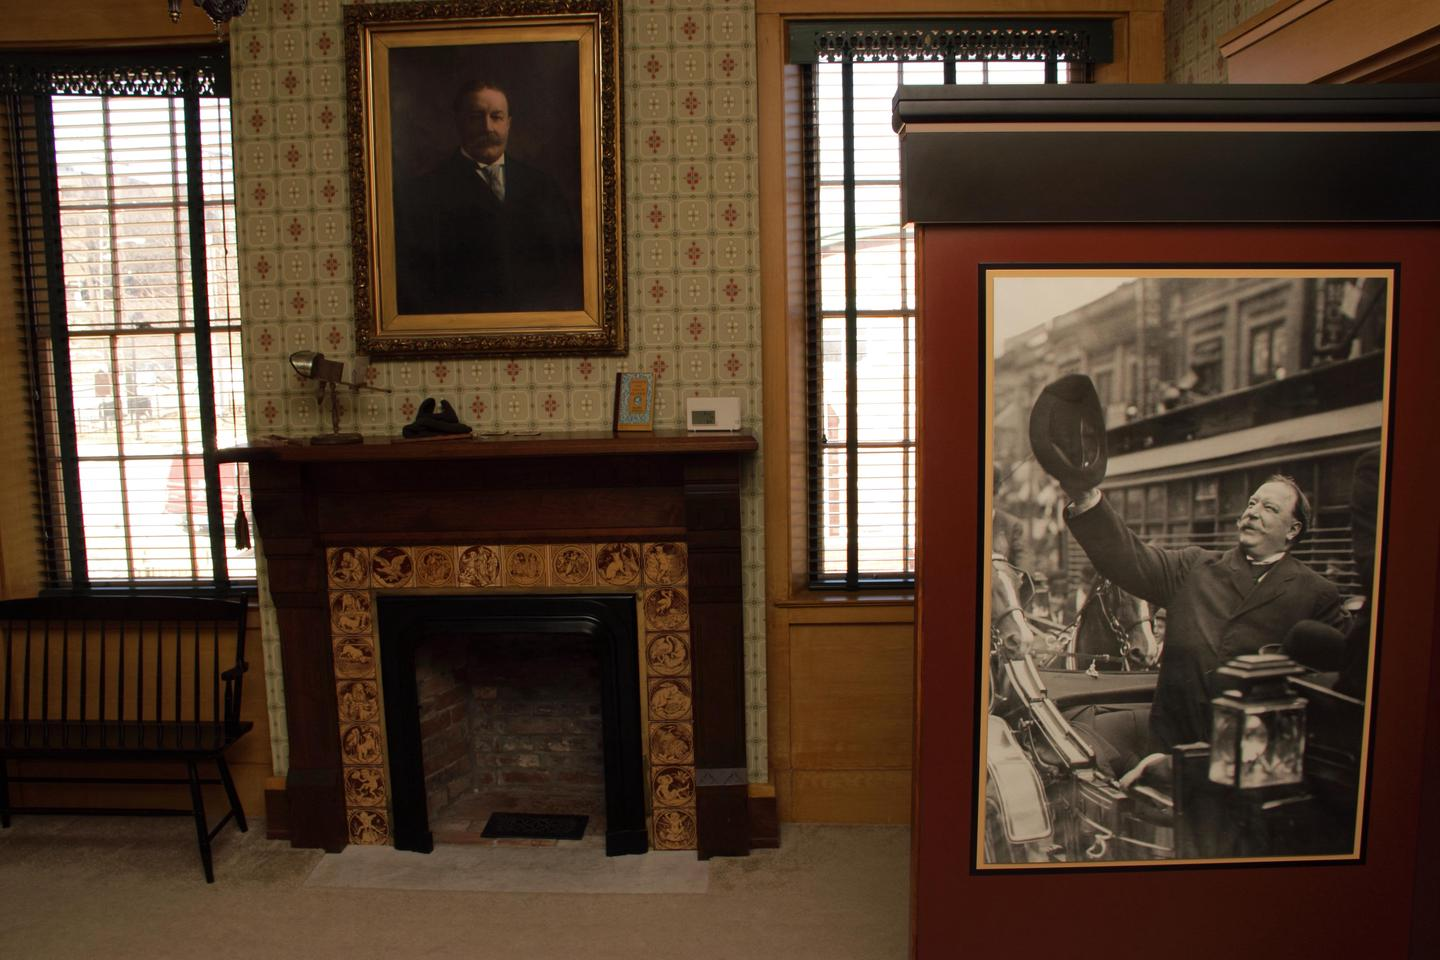 Taft home displayOne of the rooms inside of the Taft home with portrait displays of William Howard Taft and Alphonso Taft.